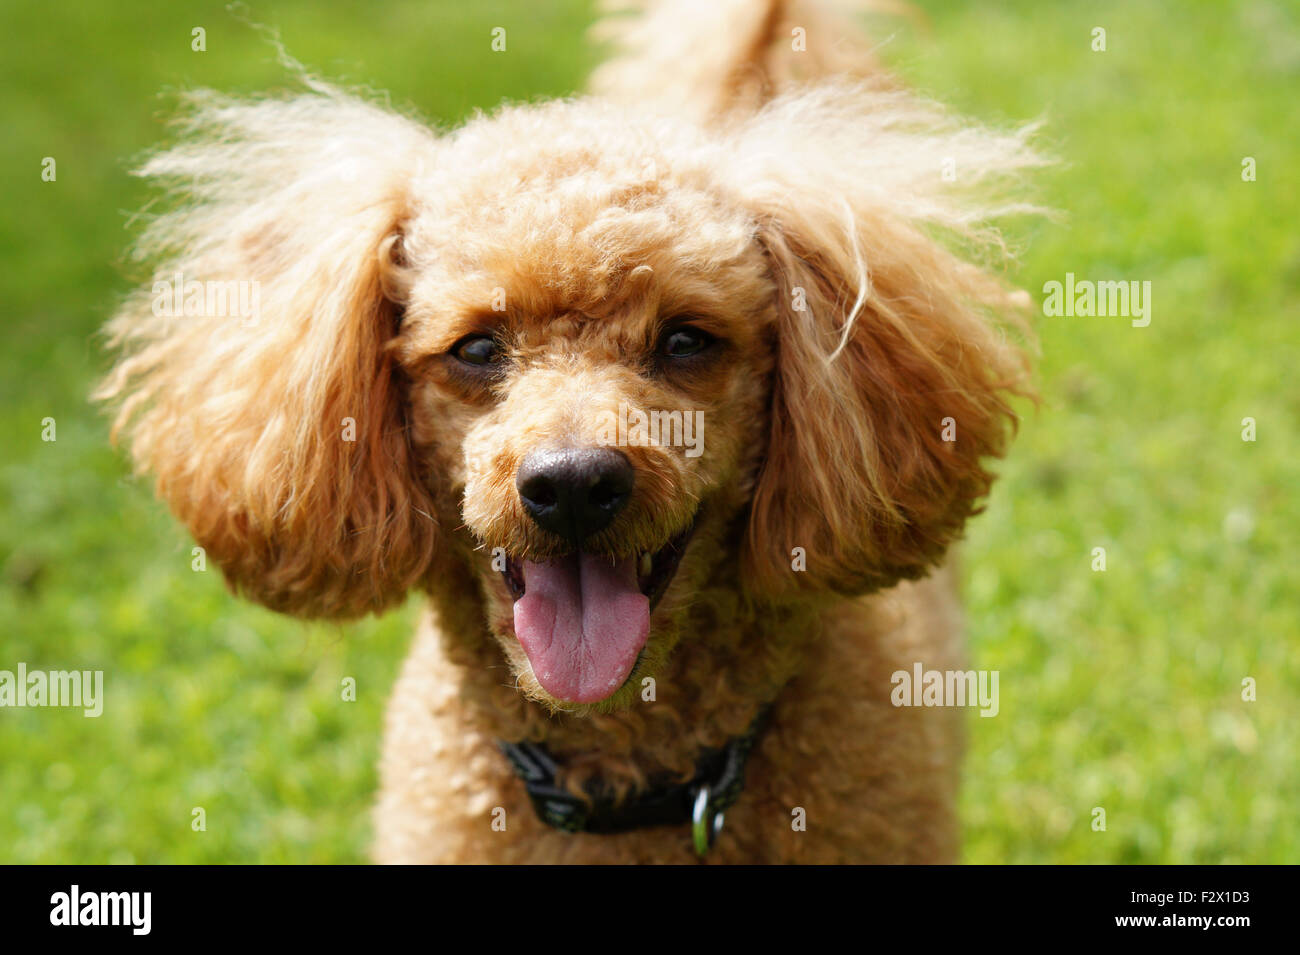 Happy Smiling Fluffy Red Toy Poodle with Tongue Out Facing camera - Stock Image